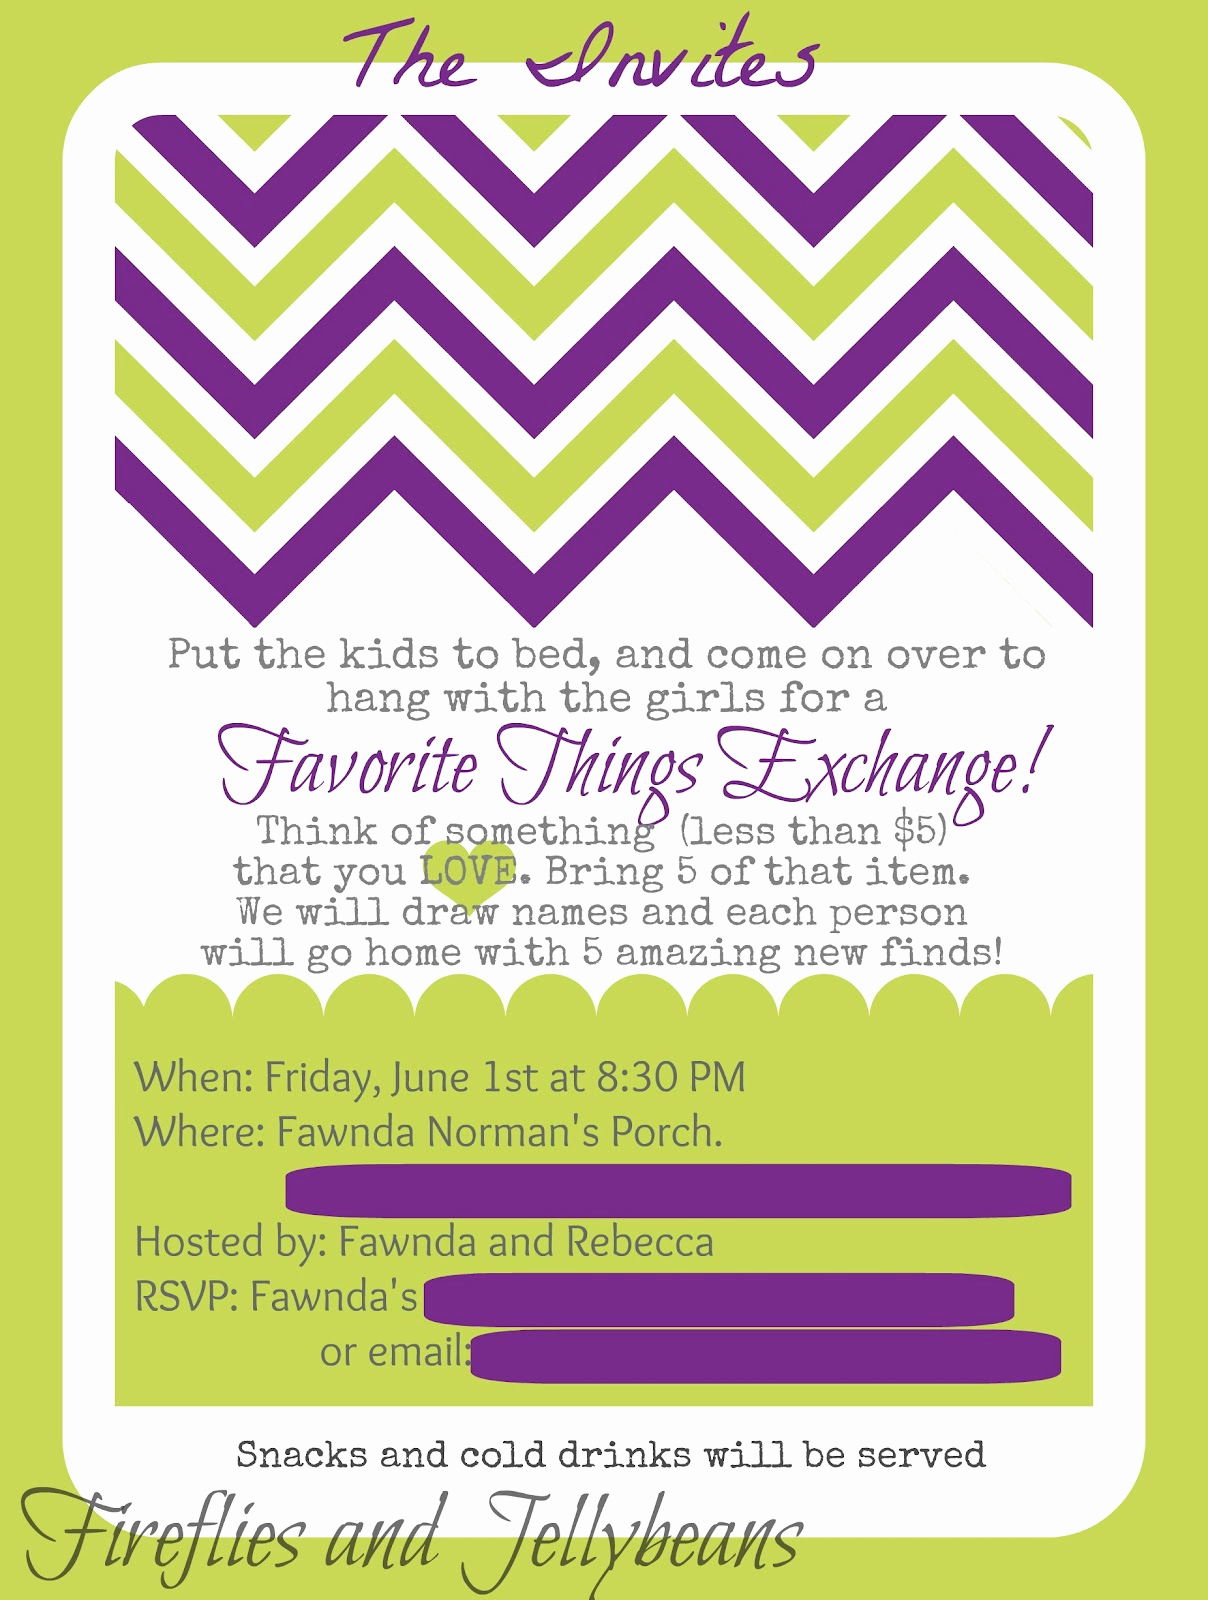 Favorite Things Party Invitation Elegant Fireflies and Jellybeans Favorite Things Party